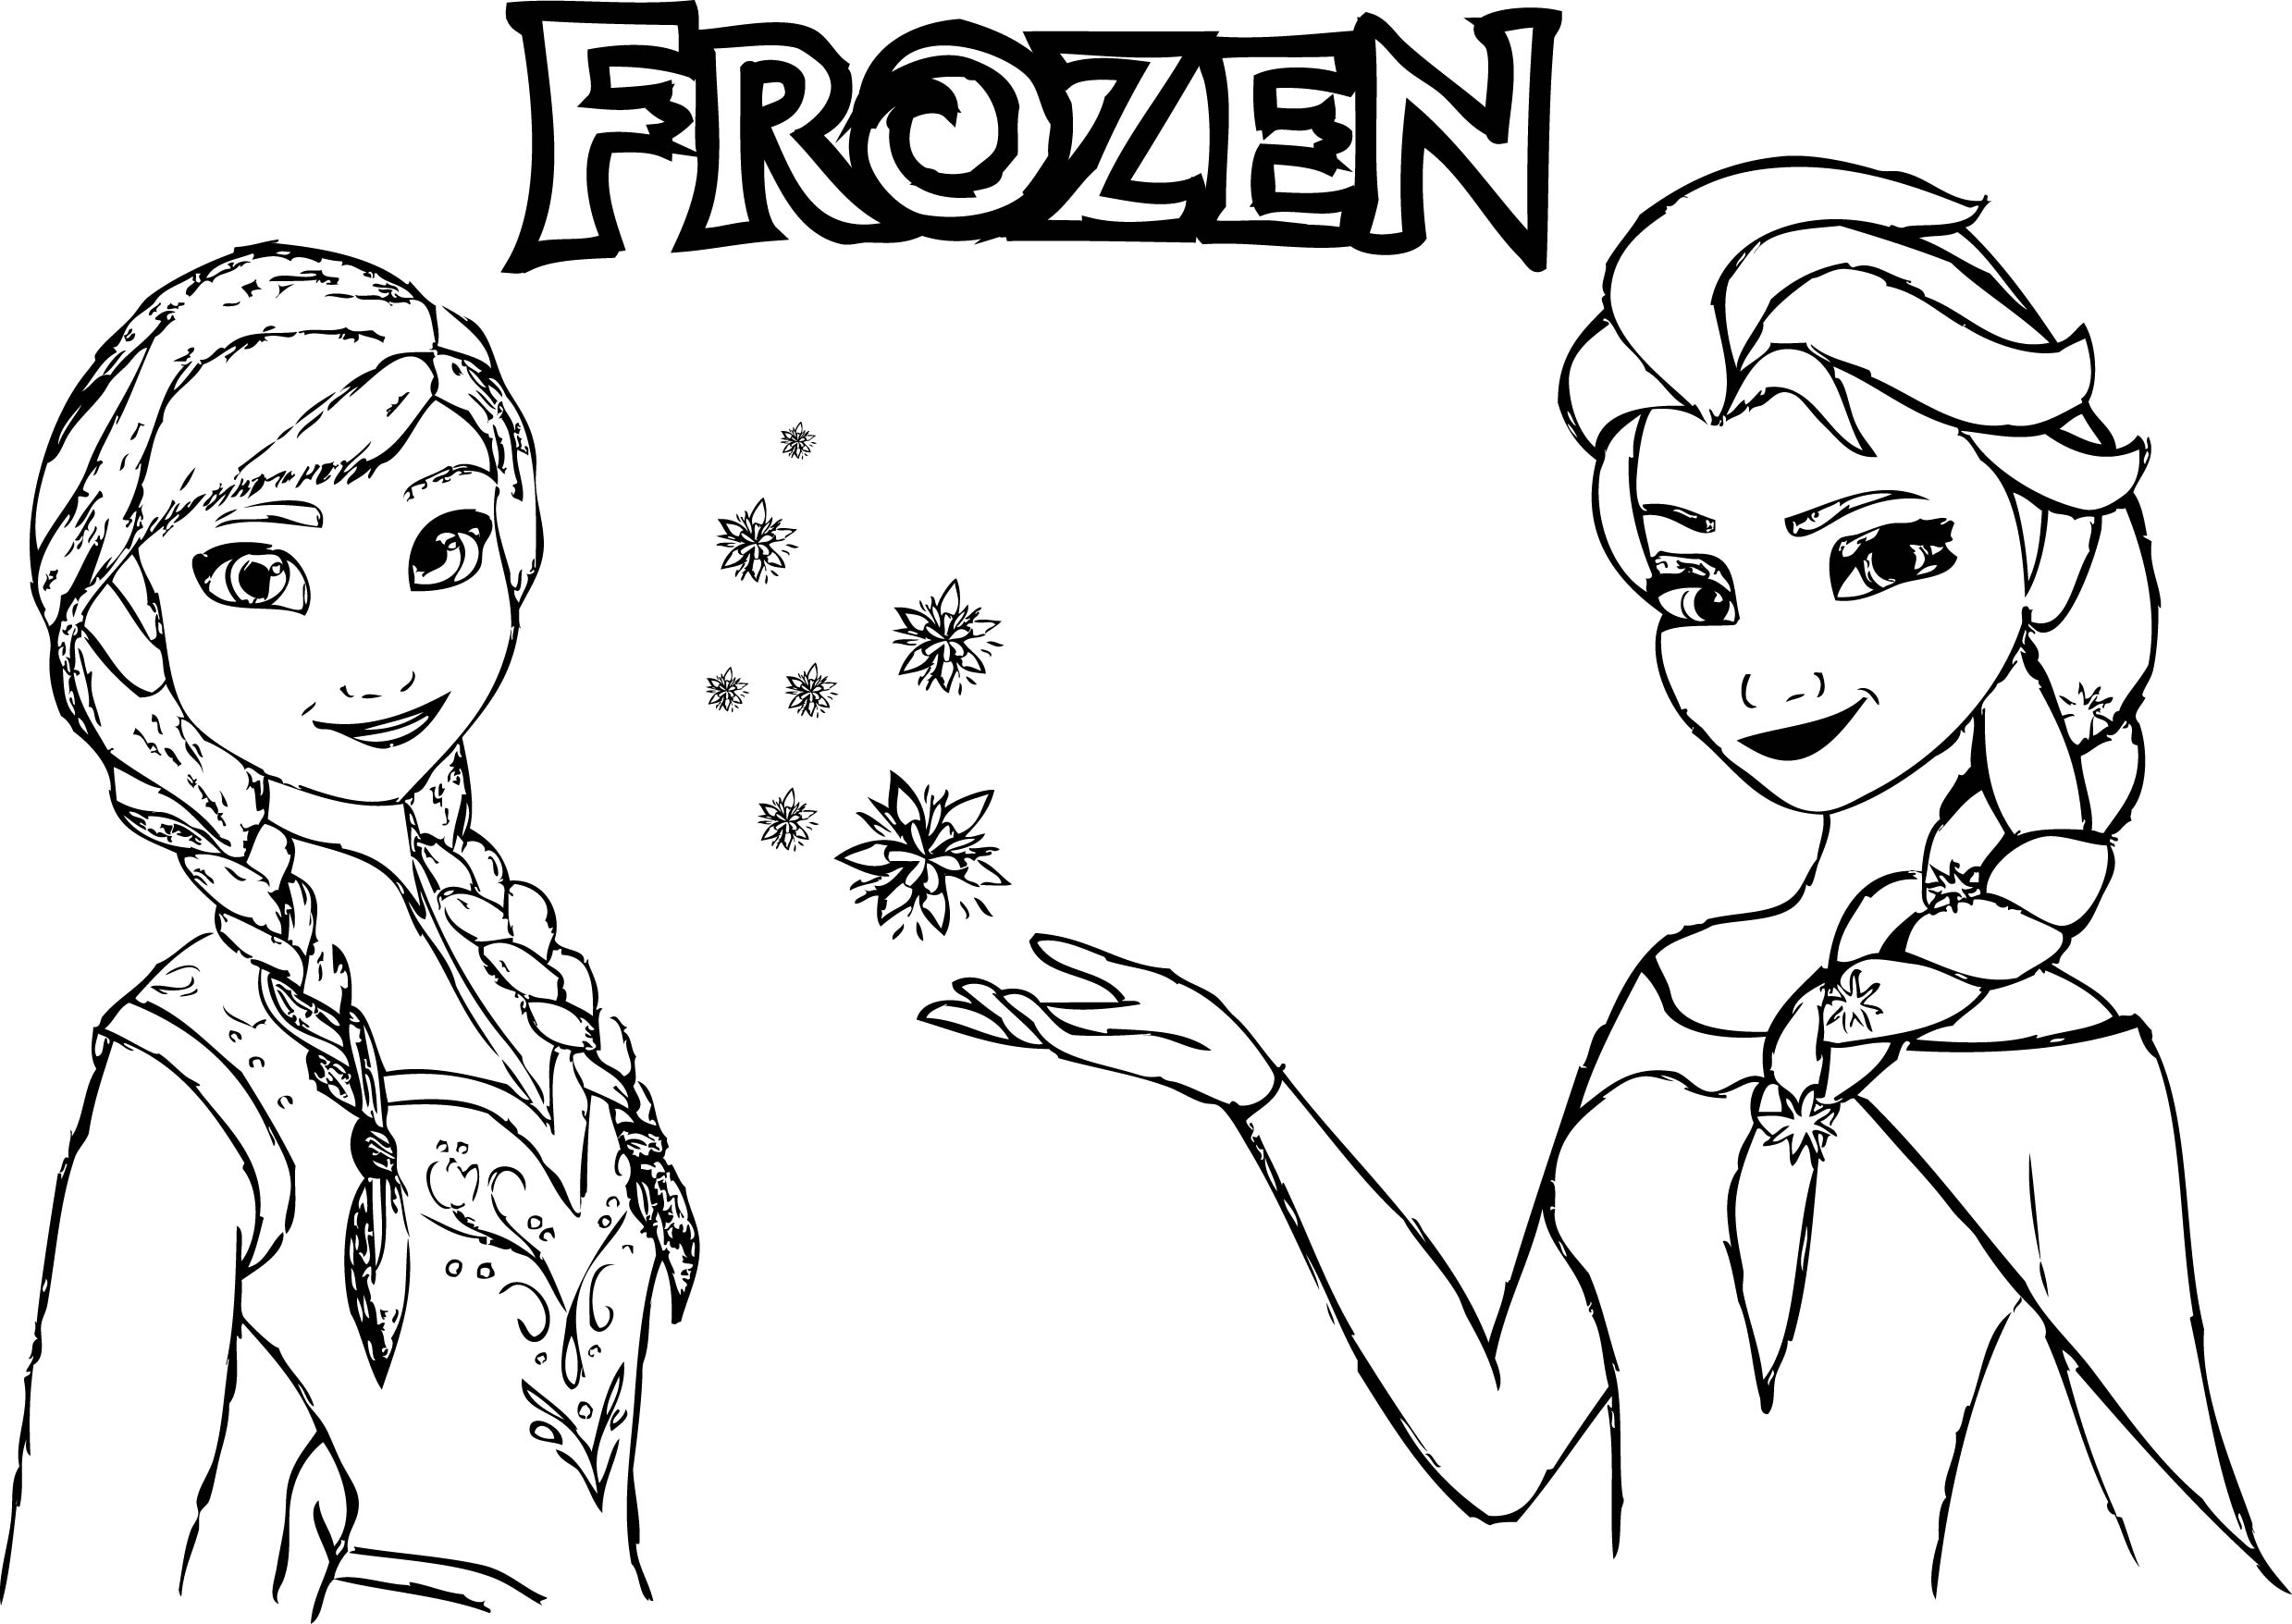 frozen anna elsa magic coloring - Elsa And Anna Coloring Pages